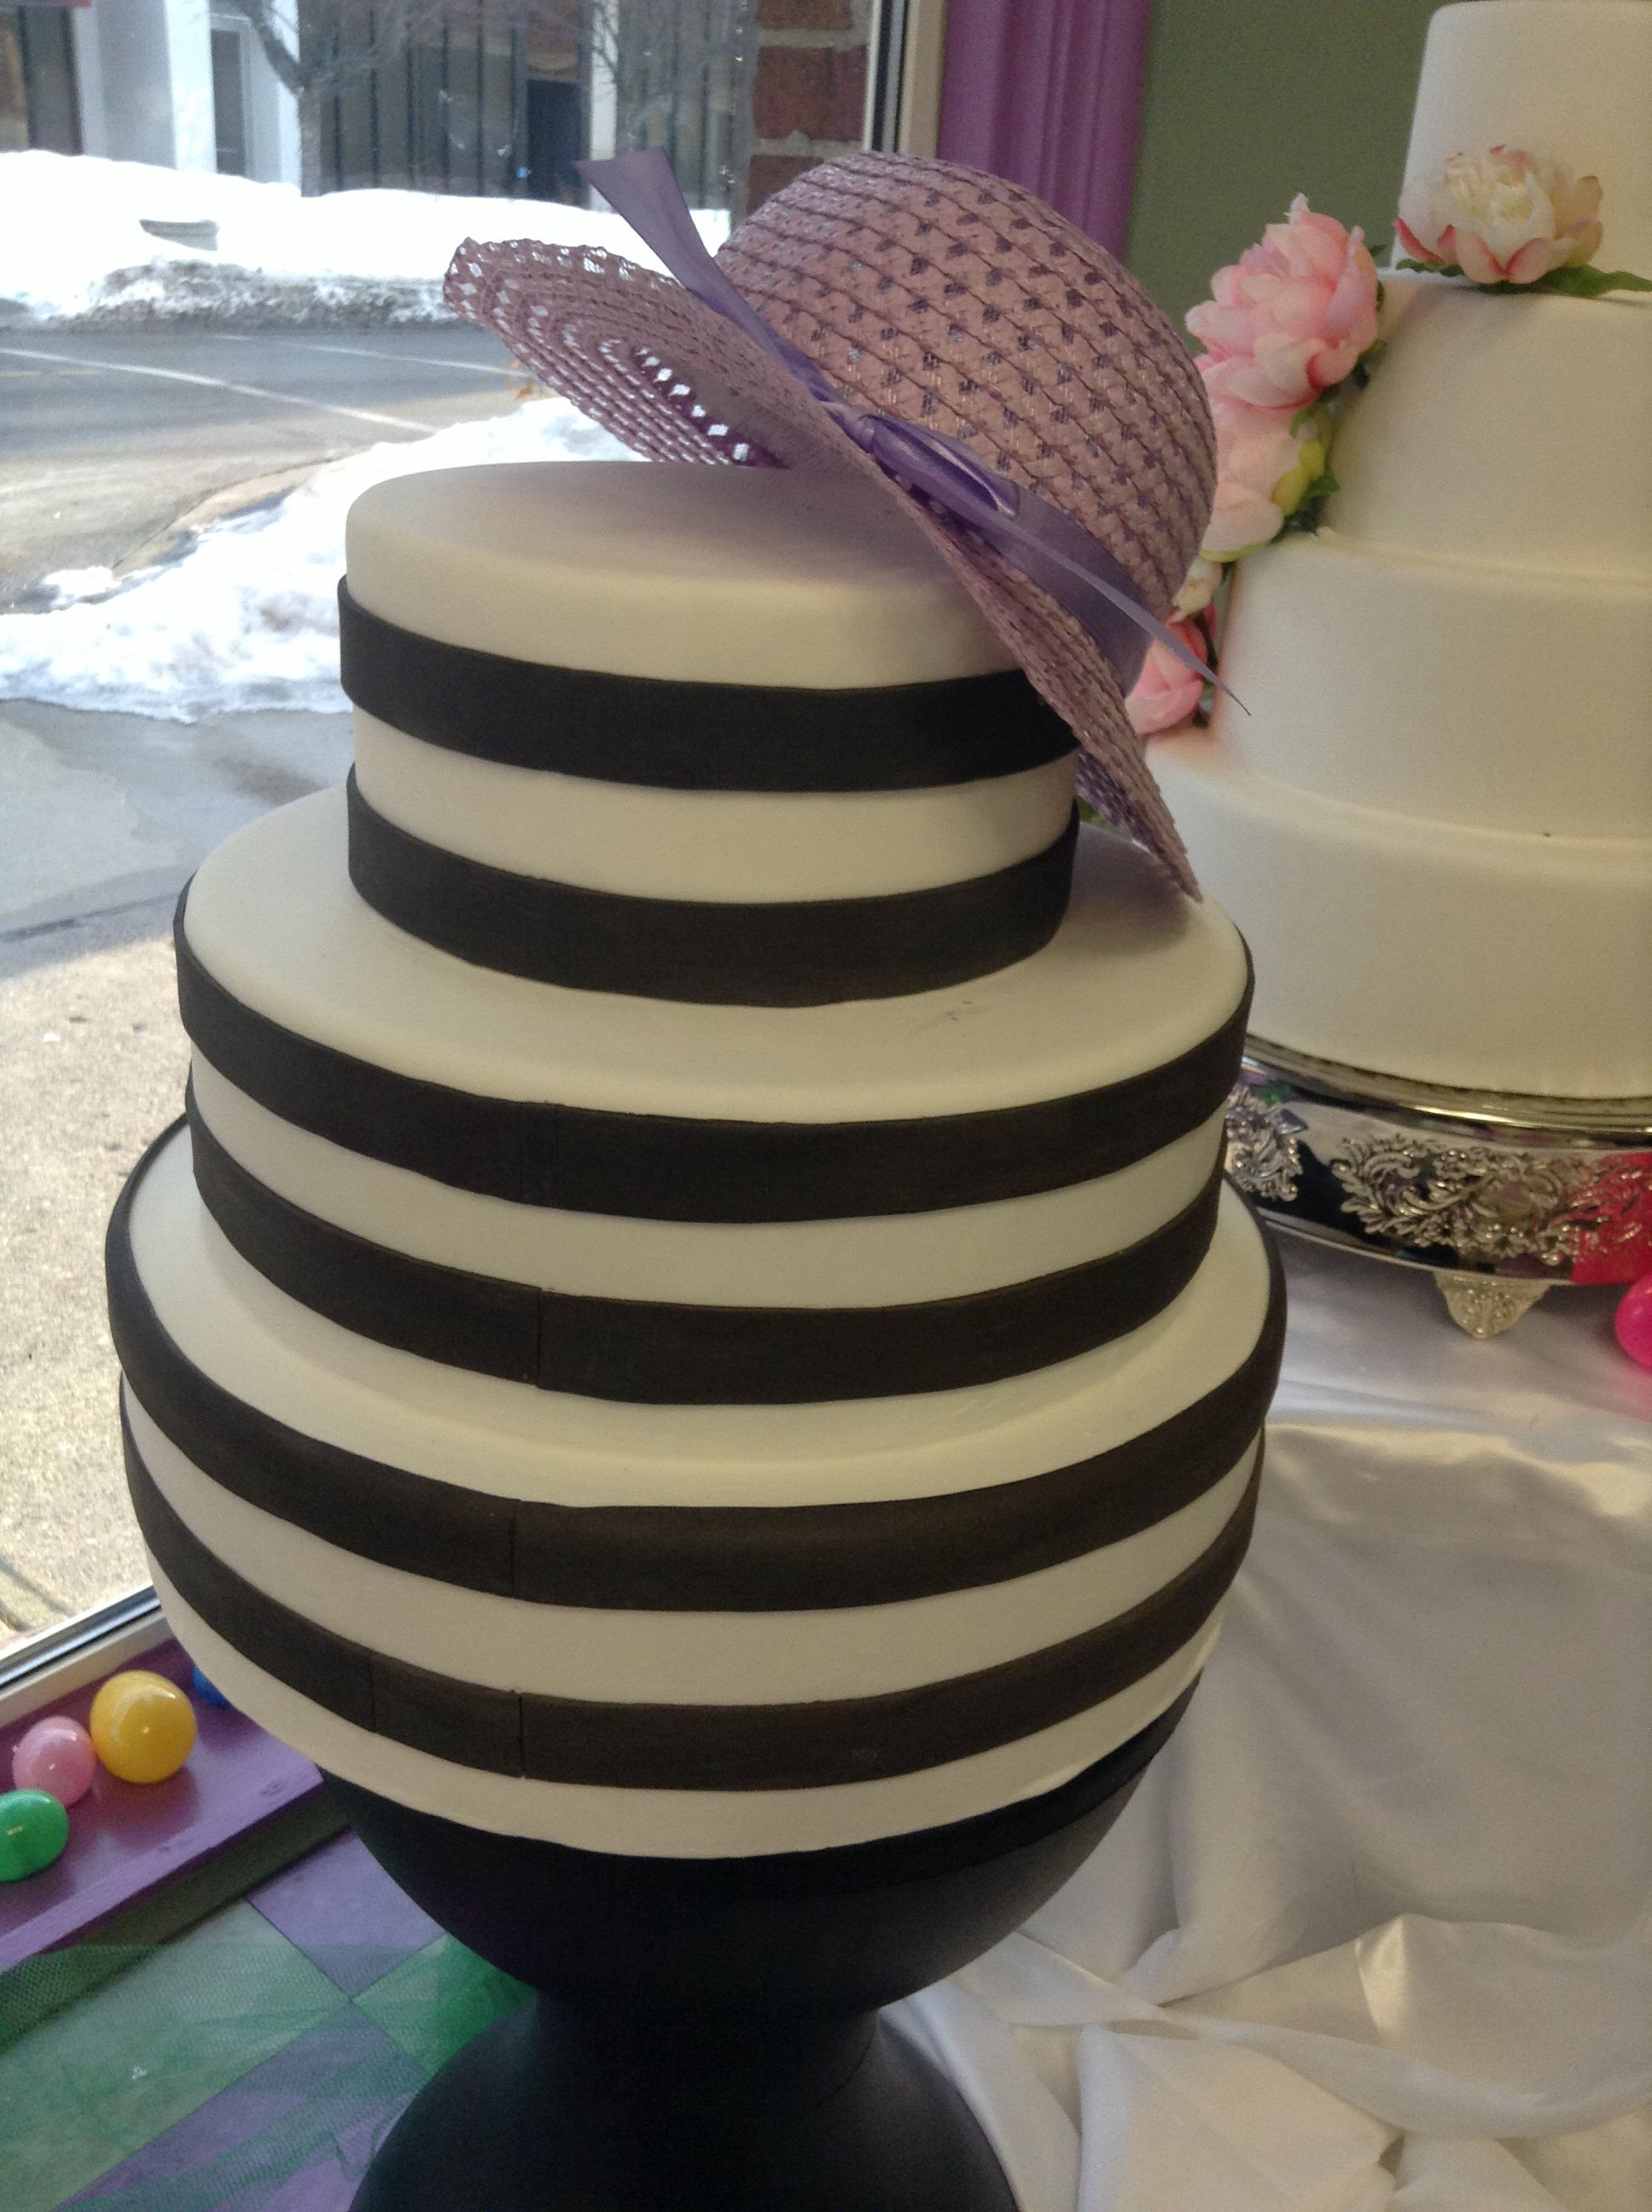 Simple striped cake